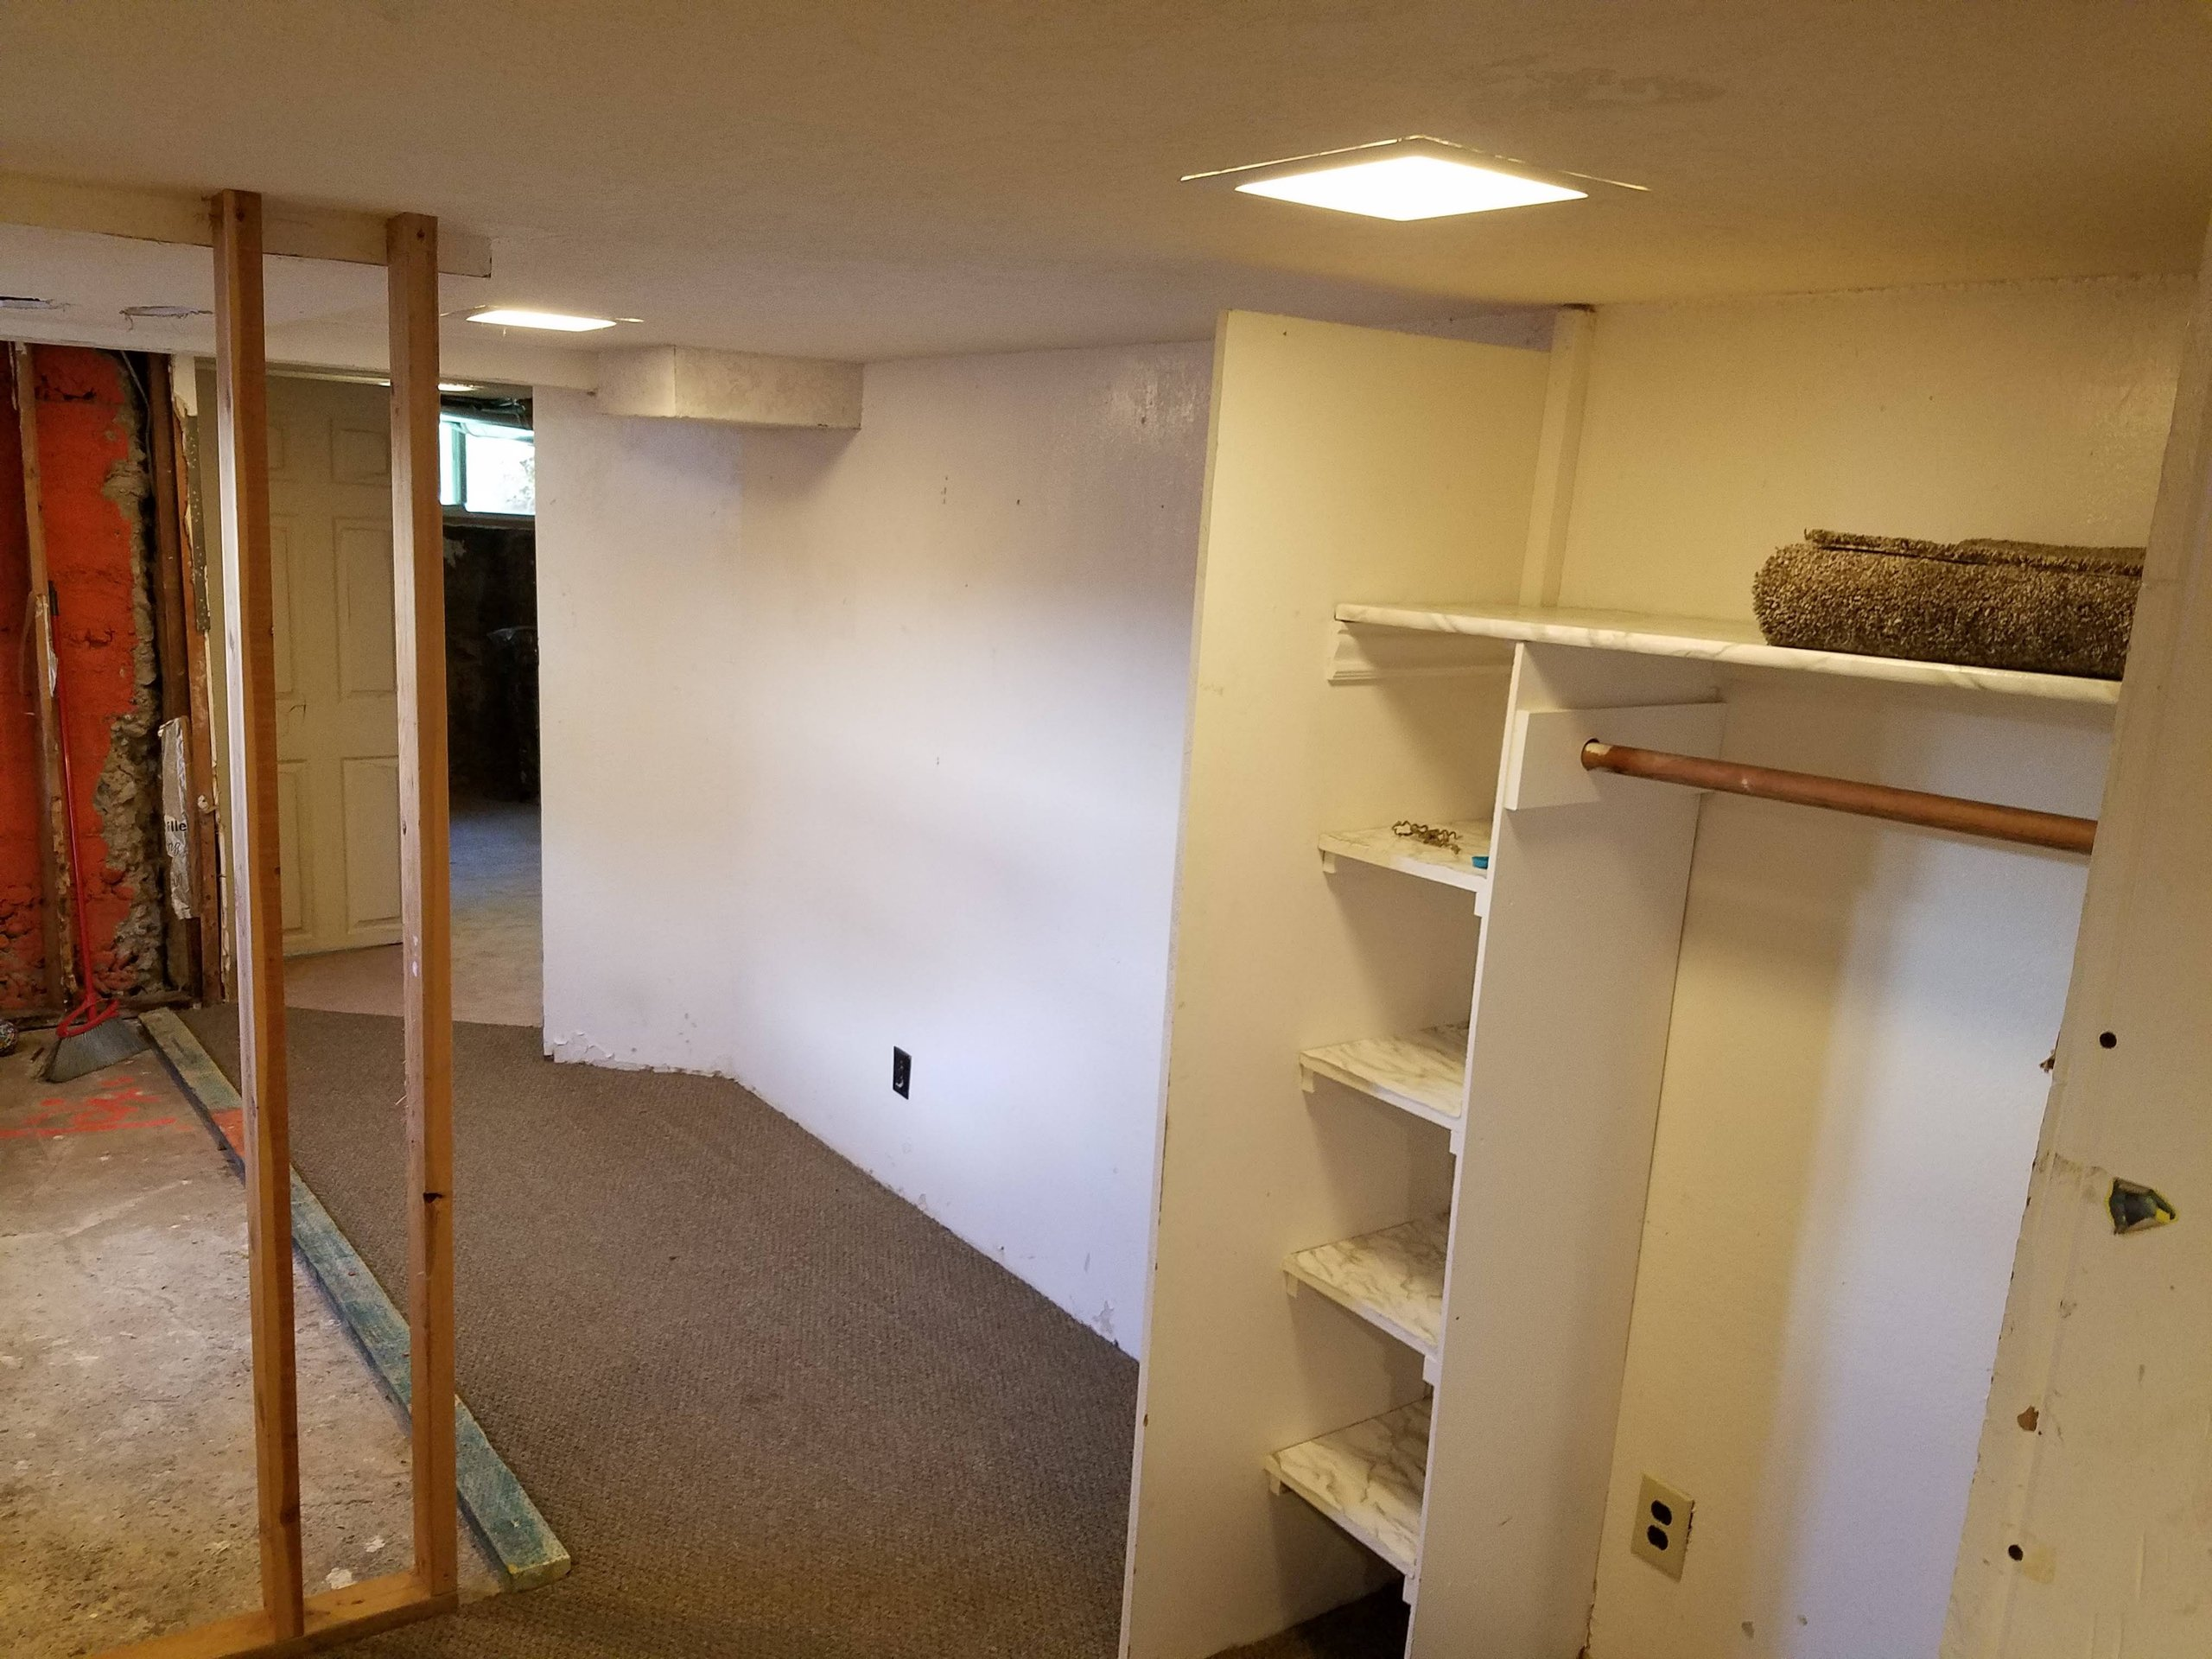 9x9 Basement self storage unit